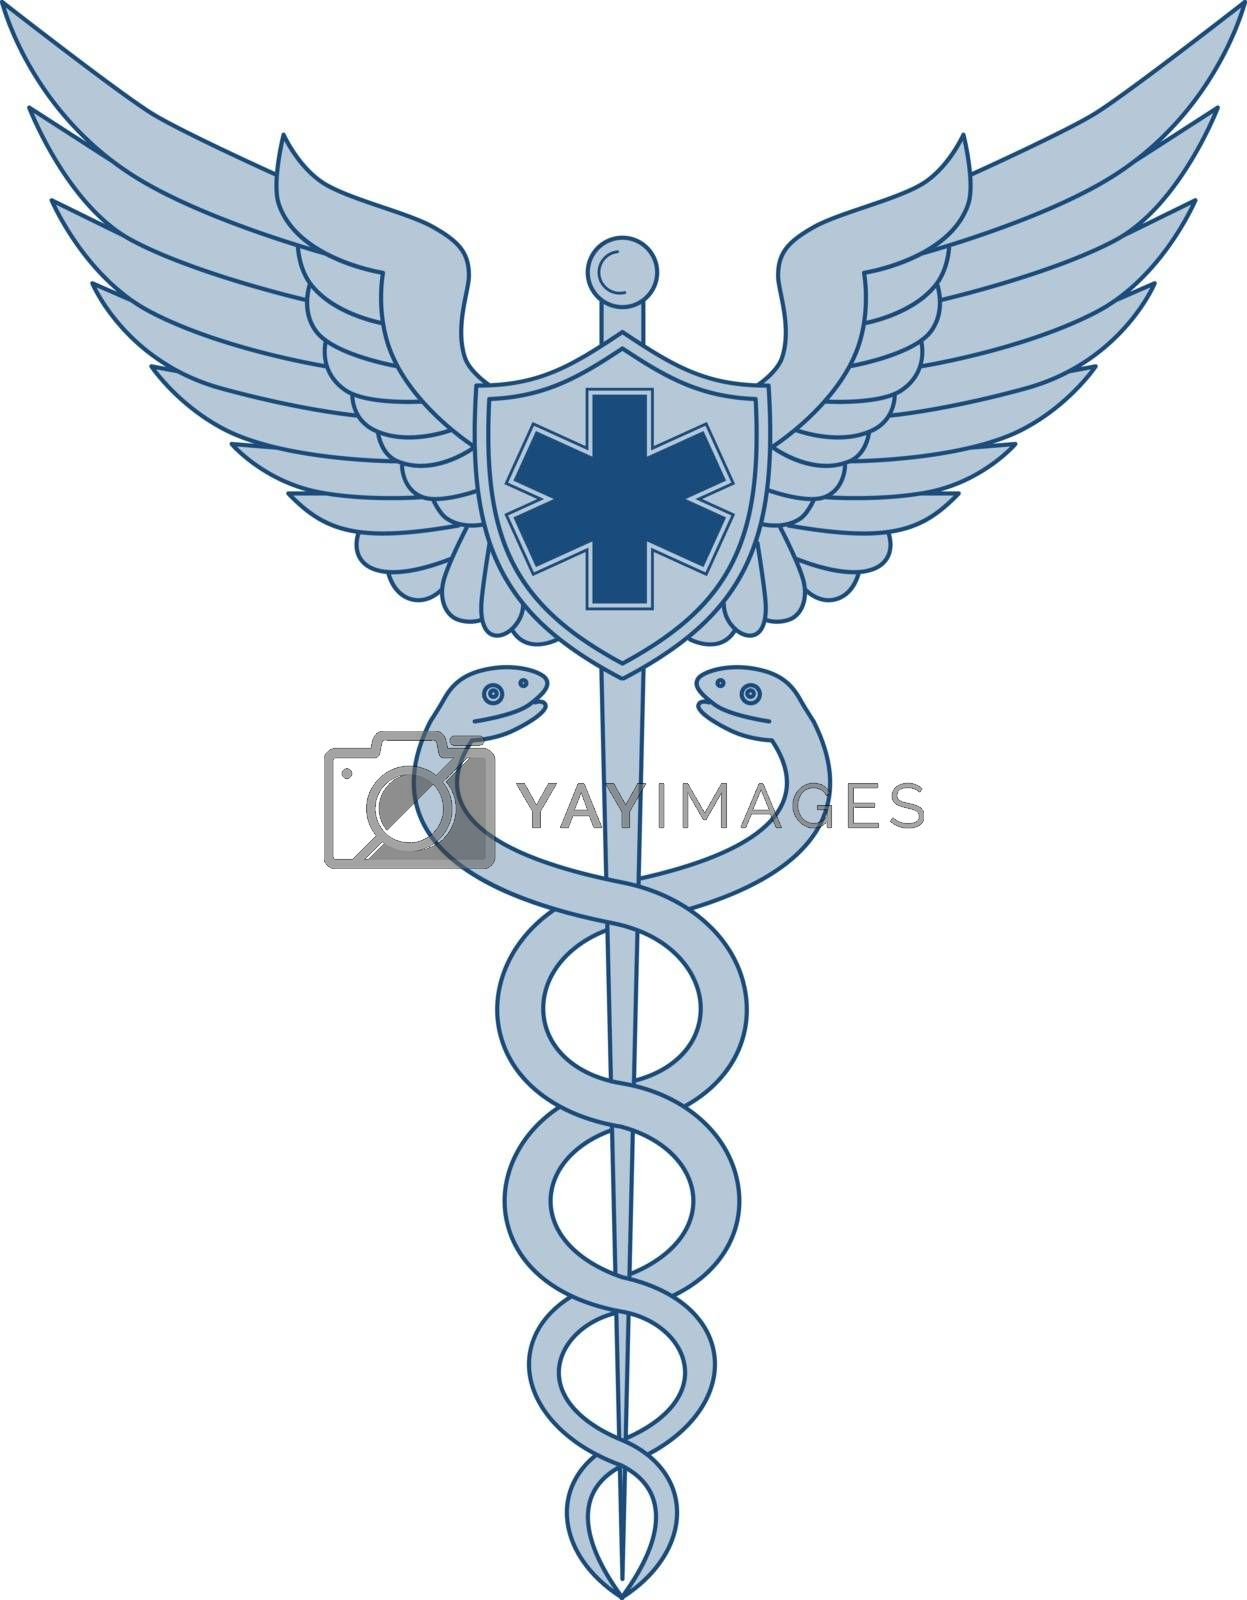 Icon style illustration of a Caduceus or Rod of Asclepius With two snakes winding around winged staff  and Pilot Wings and EMT Star on isolated background